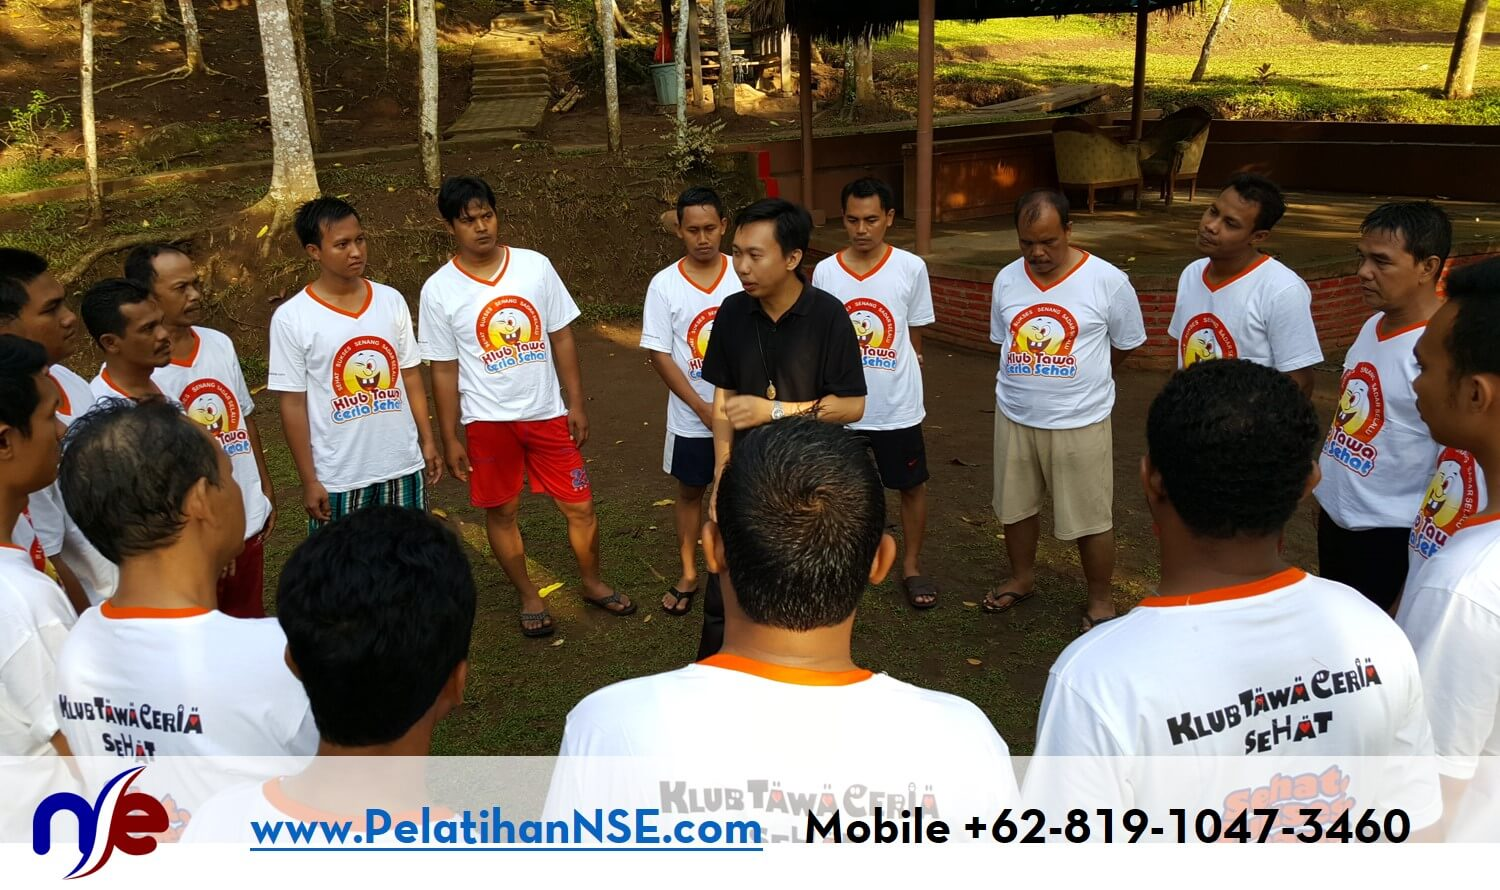 NSE Basic Self Empowerment KAI 26-27 September 2016 - Briefing tentang Makna Games